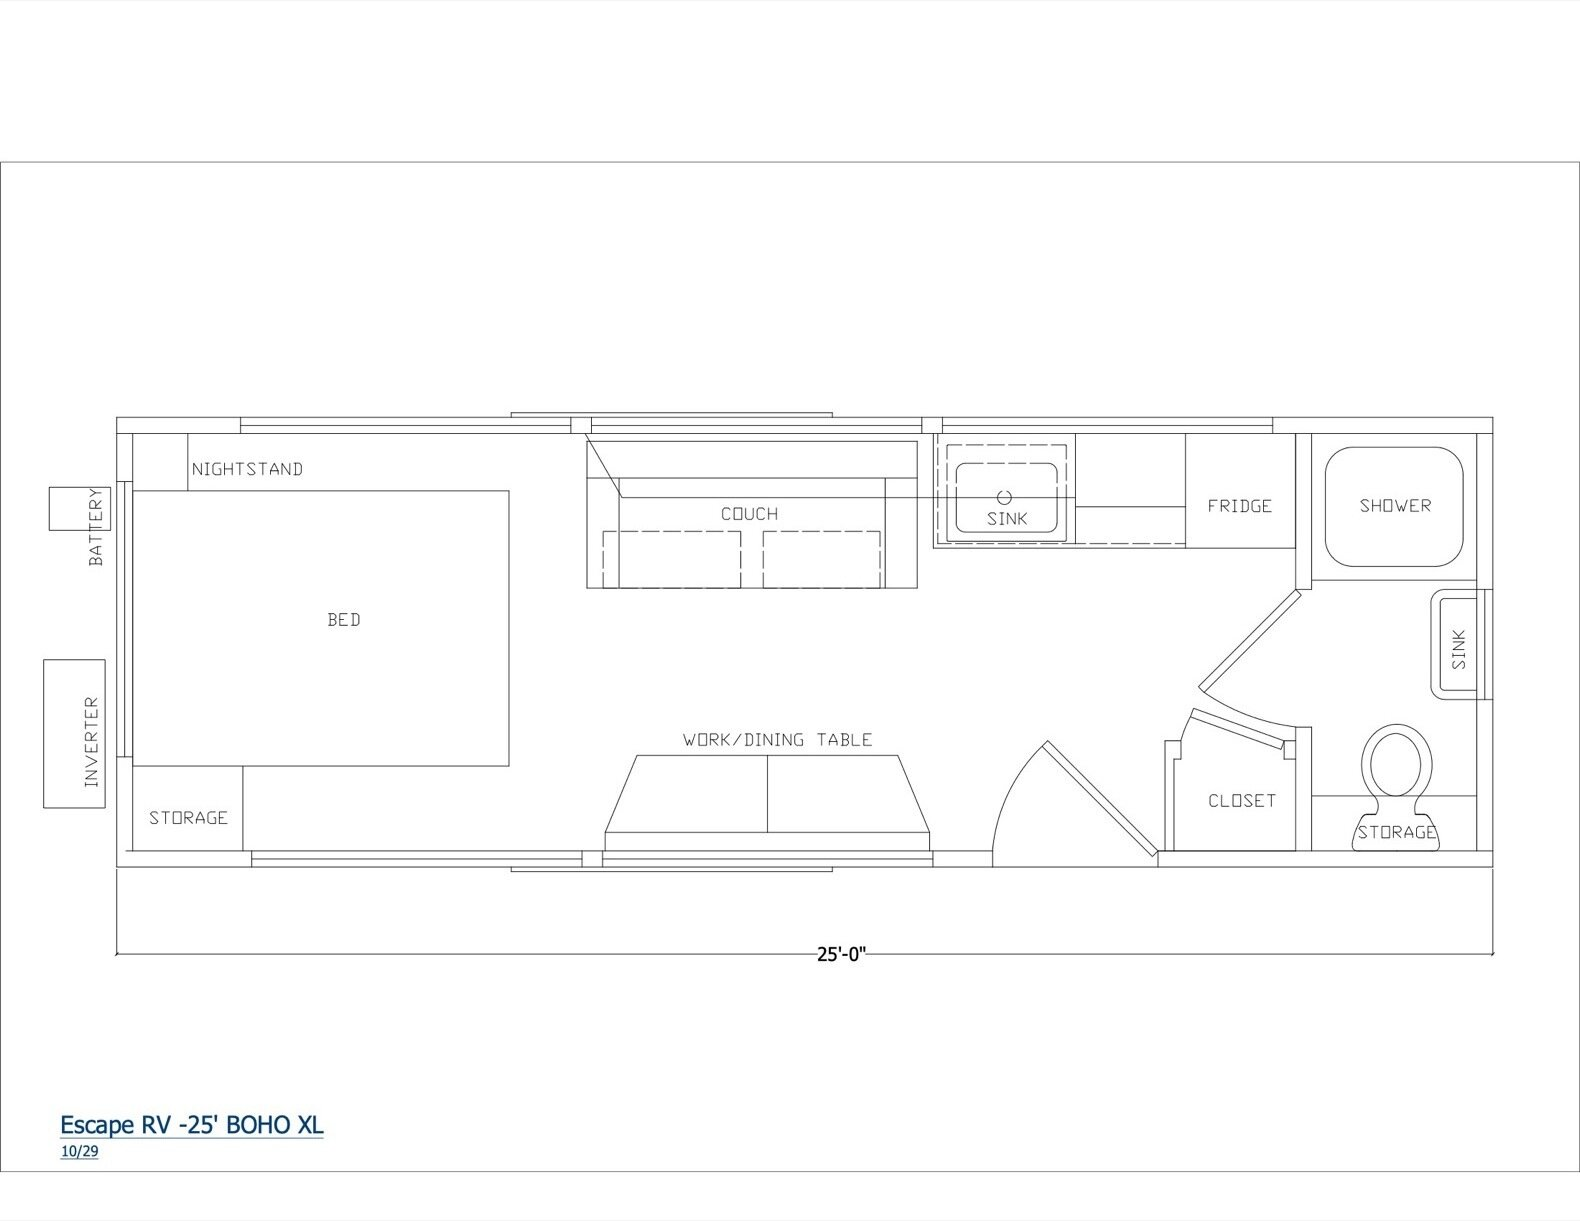 Ikea Designed A Tiny Home With Escape And It S The Most Ikea Thing Ever Autoevolution